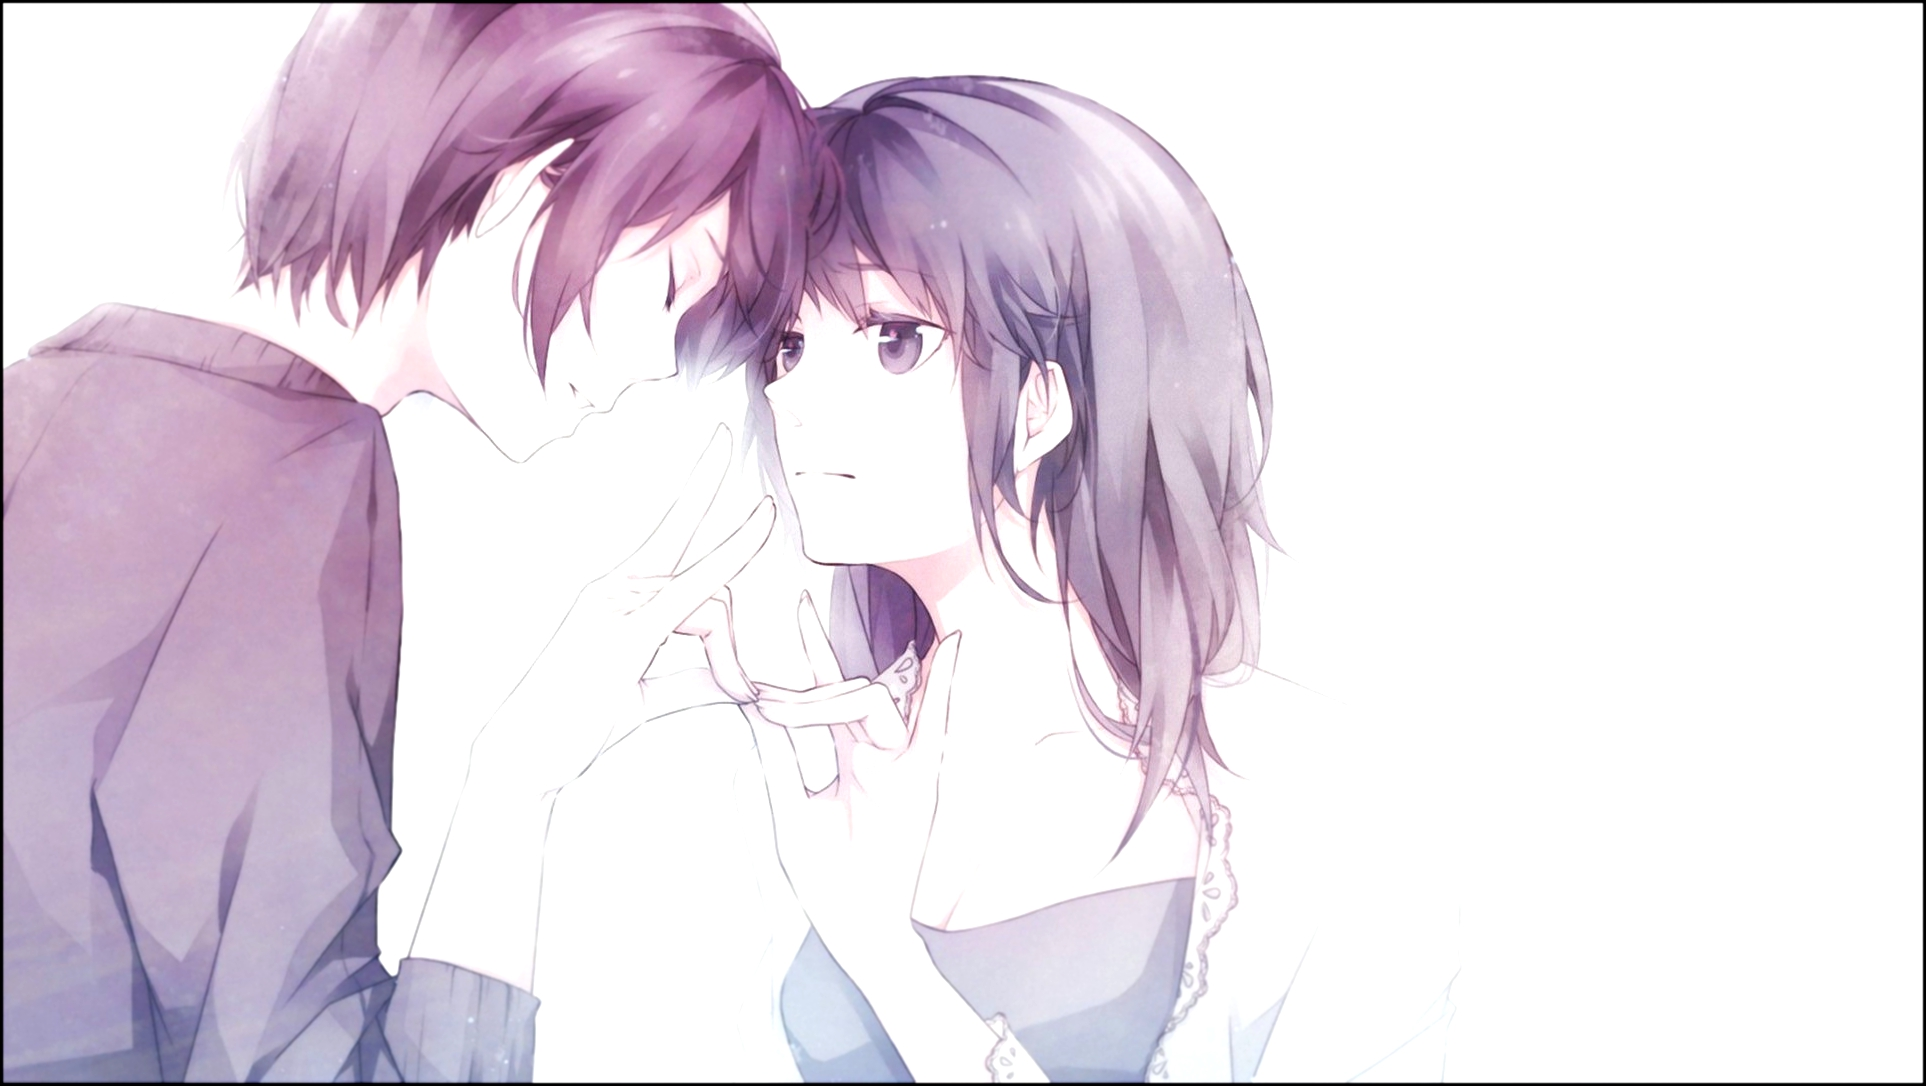 Free Download Download Cute Anime Couple Backgrounds 1926x1086 For Your Desktop Mobile Tablet Explore 73 Cute Anime Couple Wallpaper Romantic Anime Wallpaper Love Couples Wallpapers Cute Romantic Wallpapers